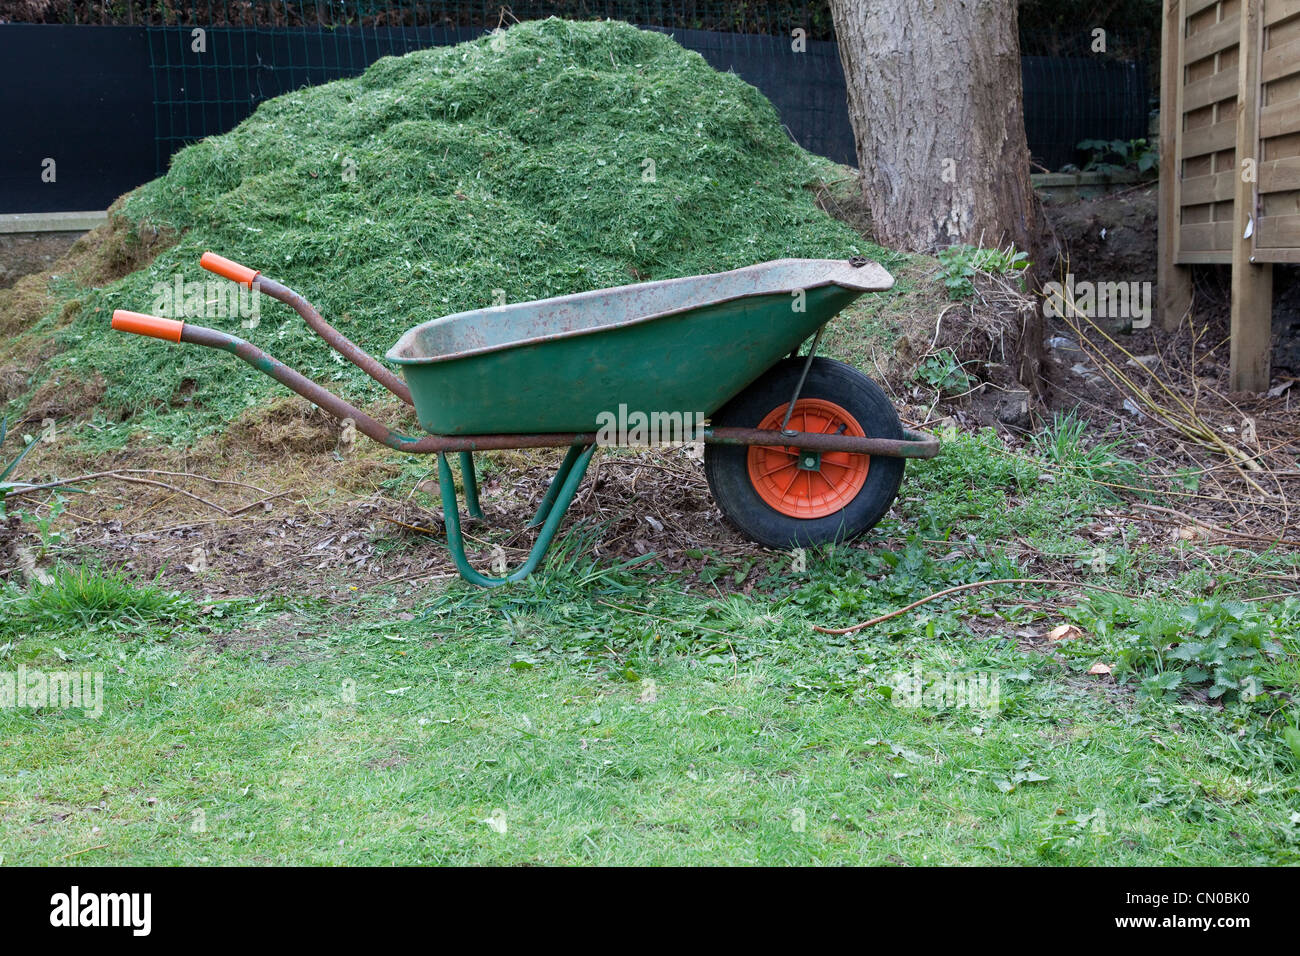 Garden wheelbarrow in front of a compost heap and grass cuttings - Stock Image